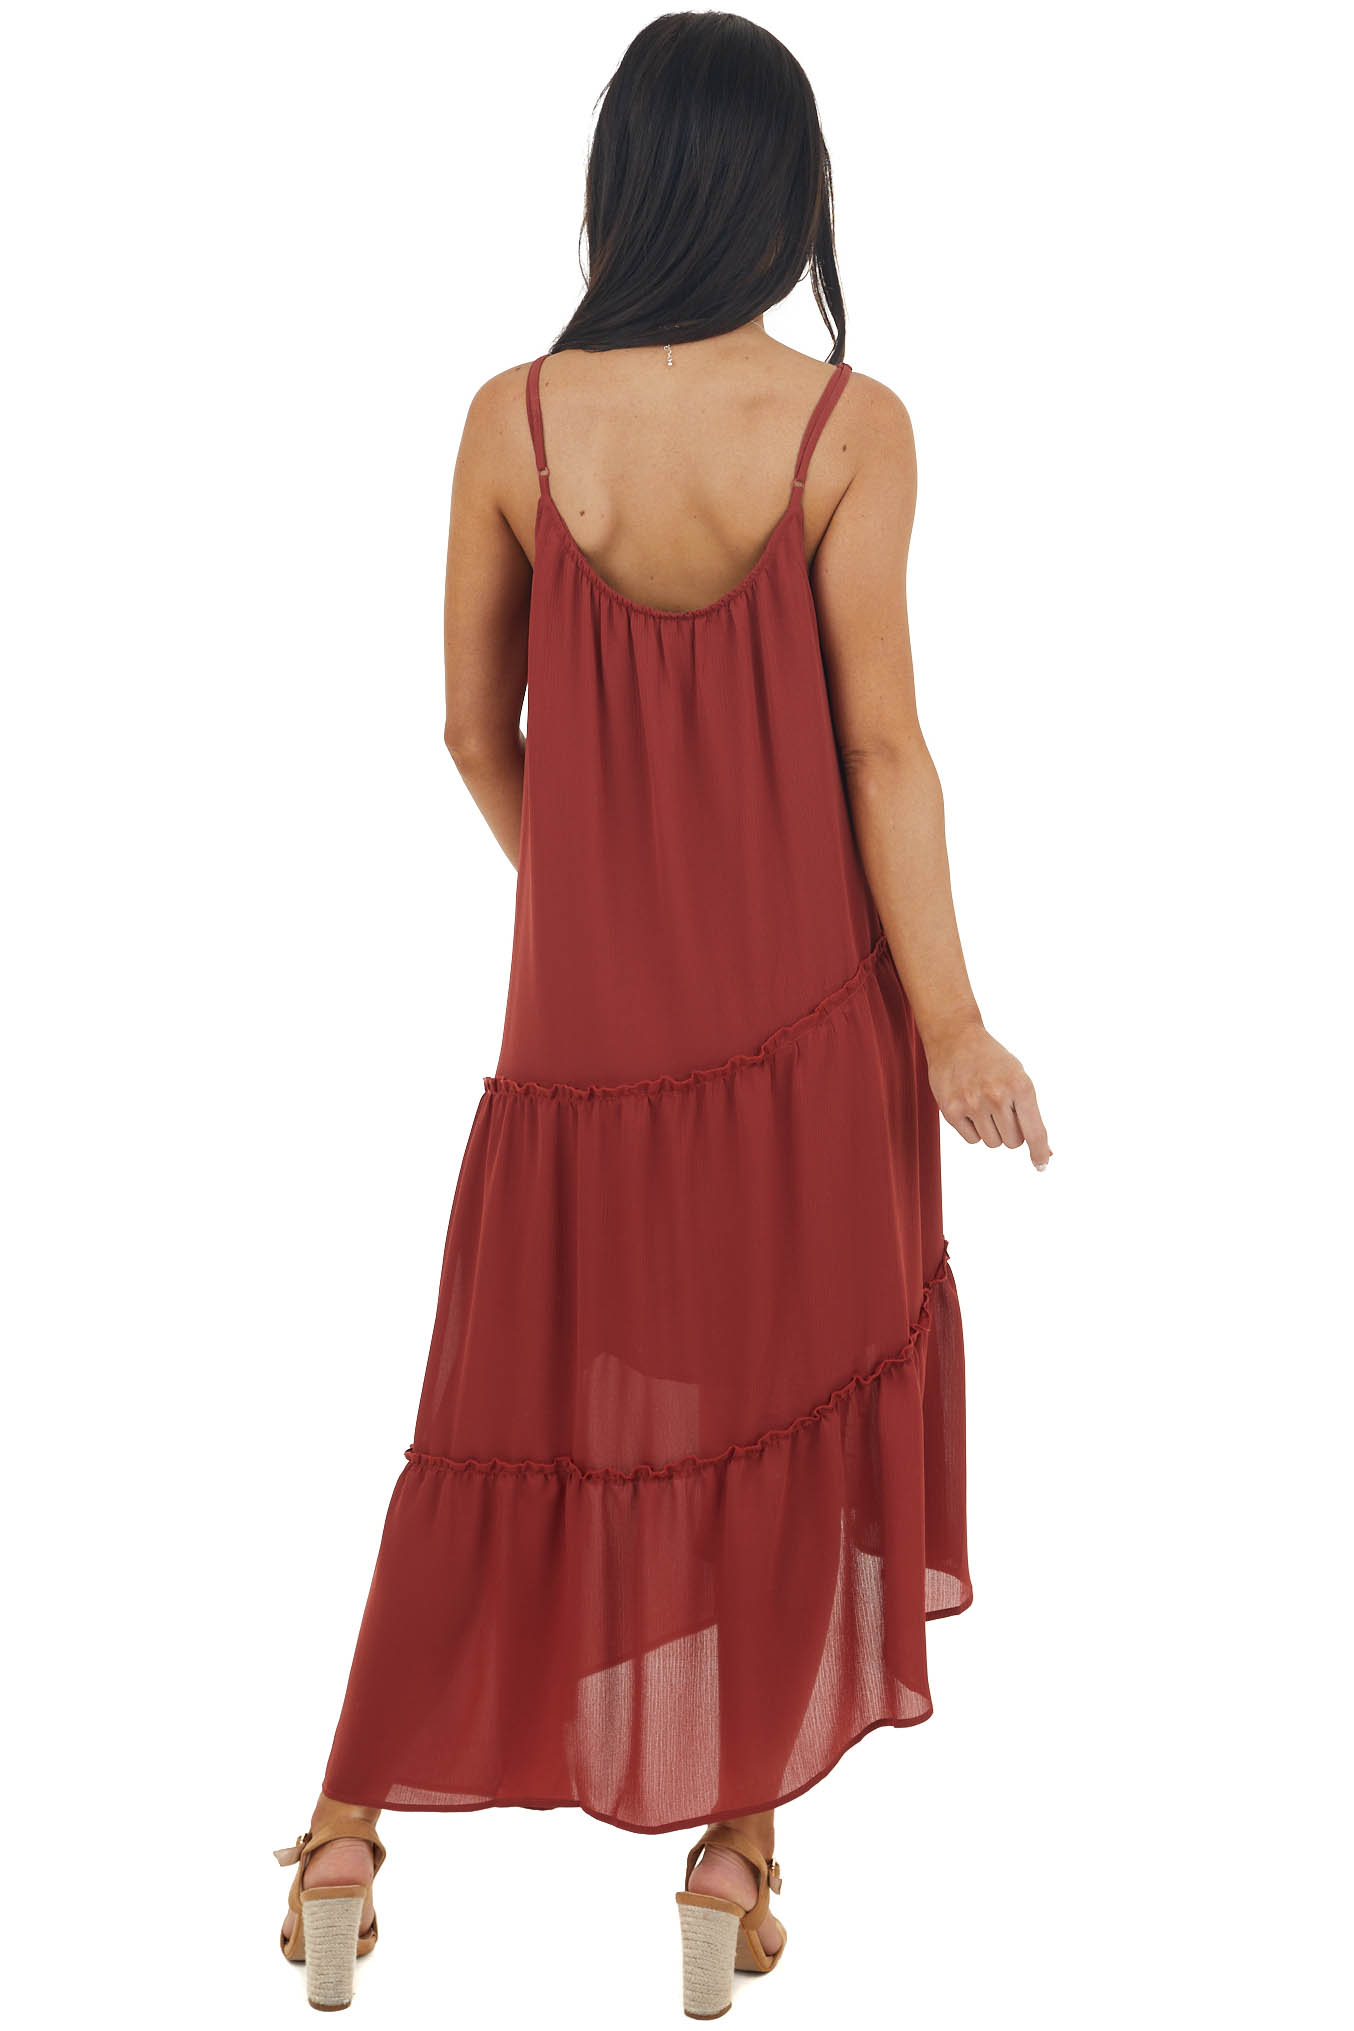 Faded Sangria Asymmetrical Spaghetti Strap Tiered Midi Dress